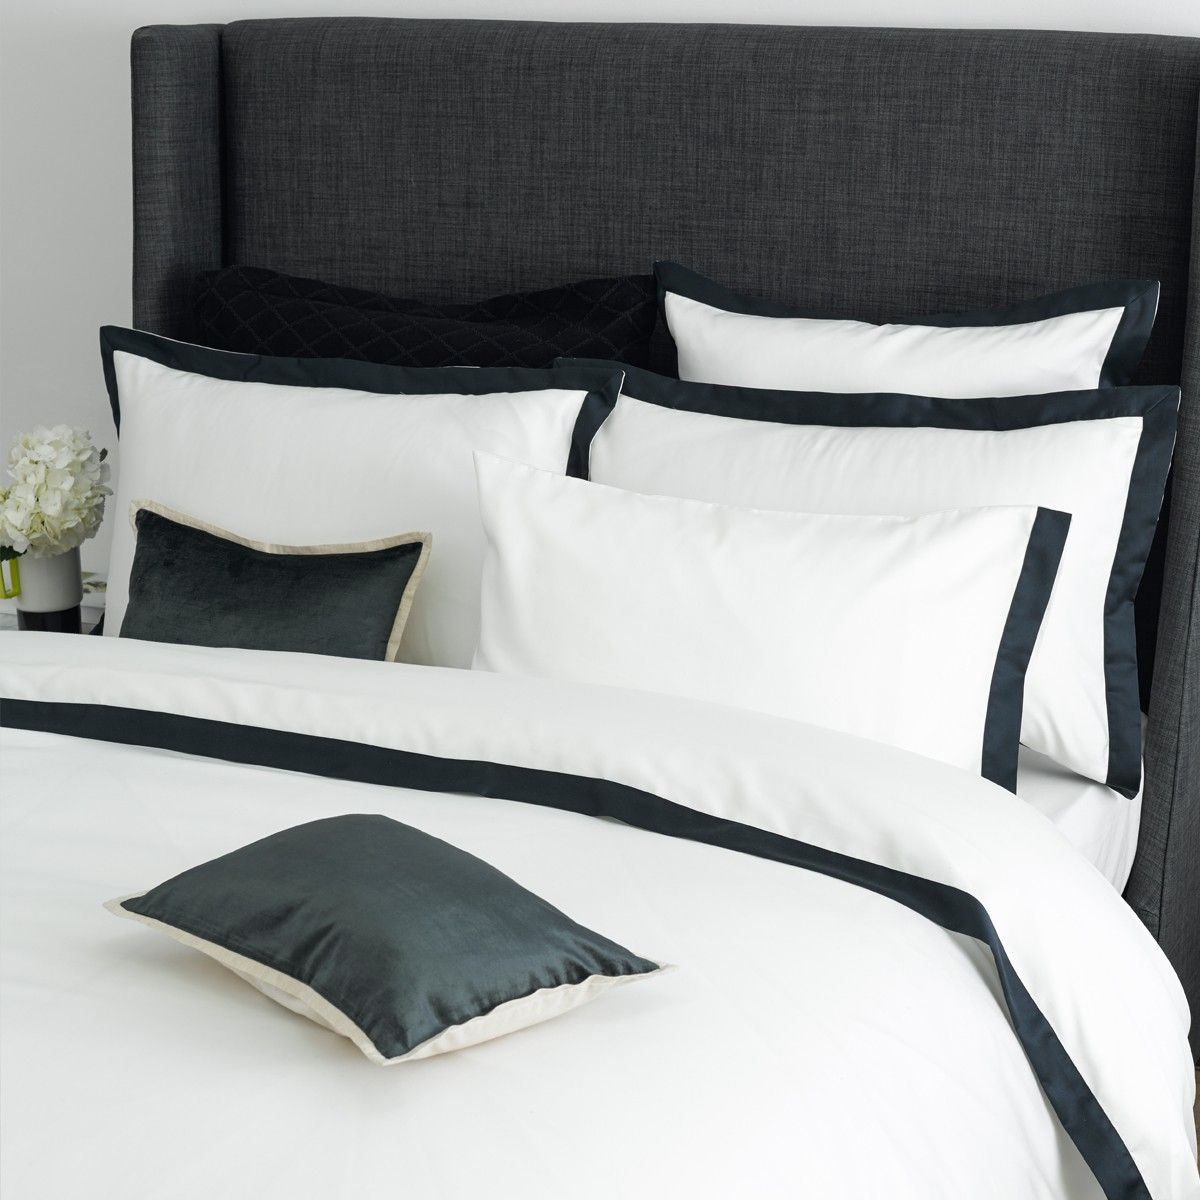 Christy Mode Bed Linen Midnight Christy Bed, Linen